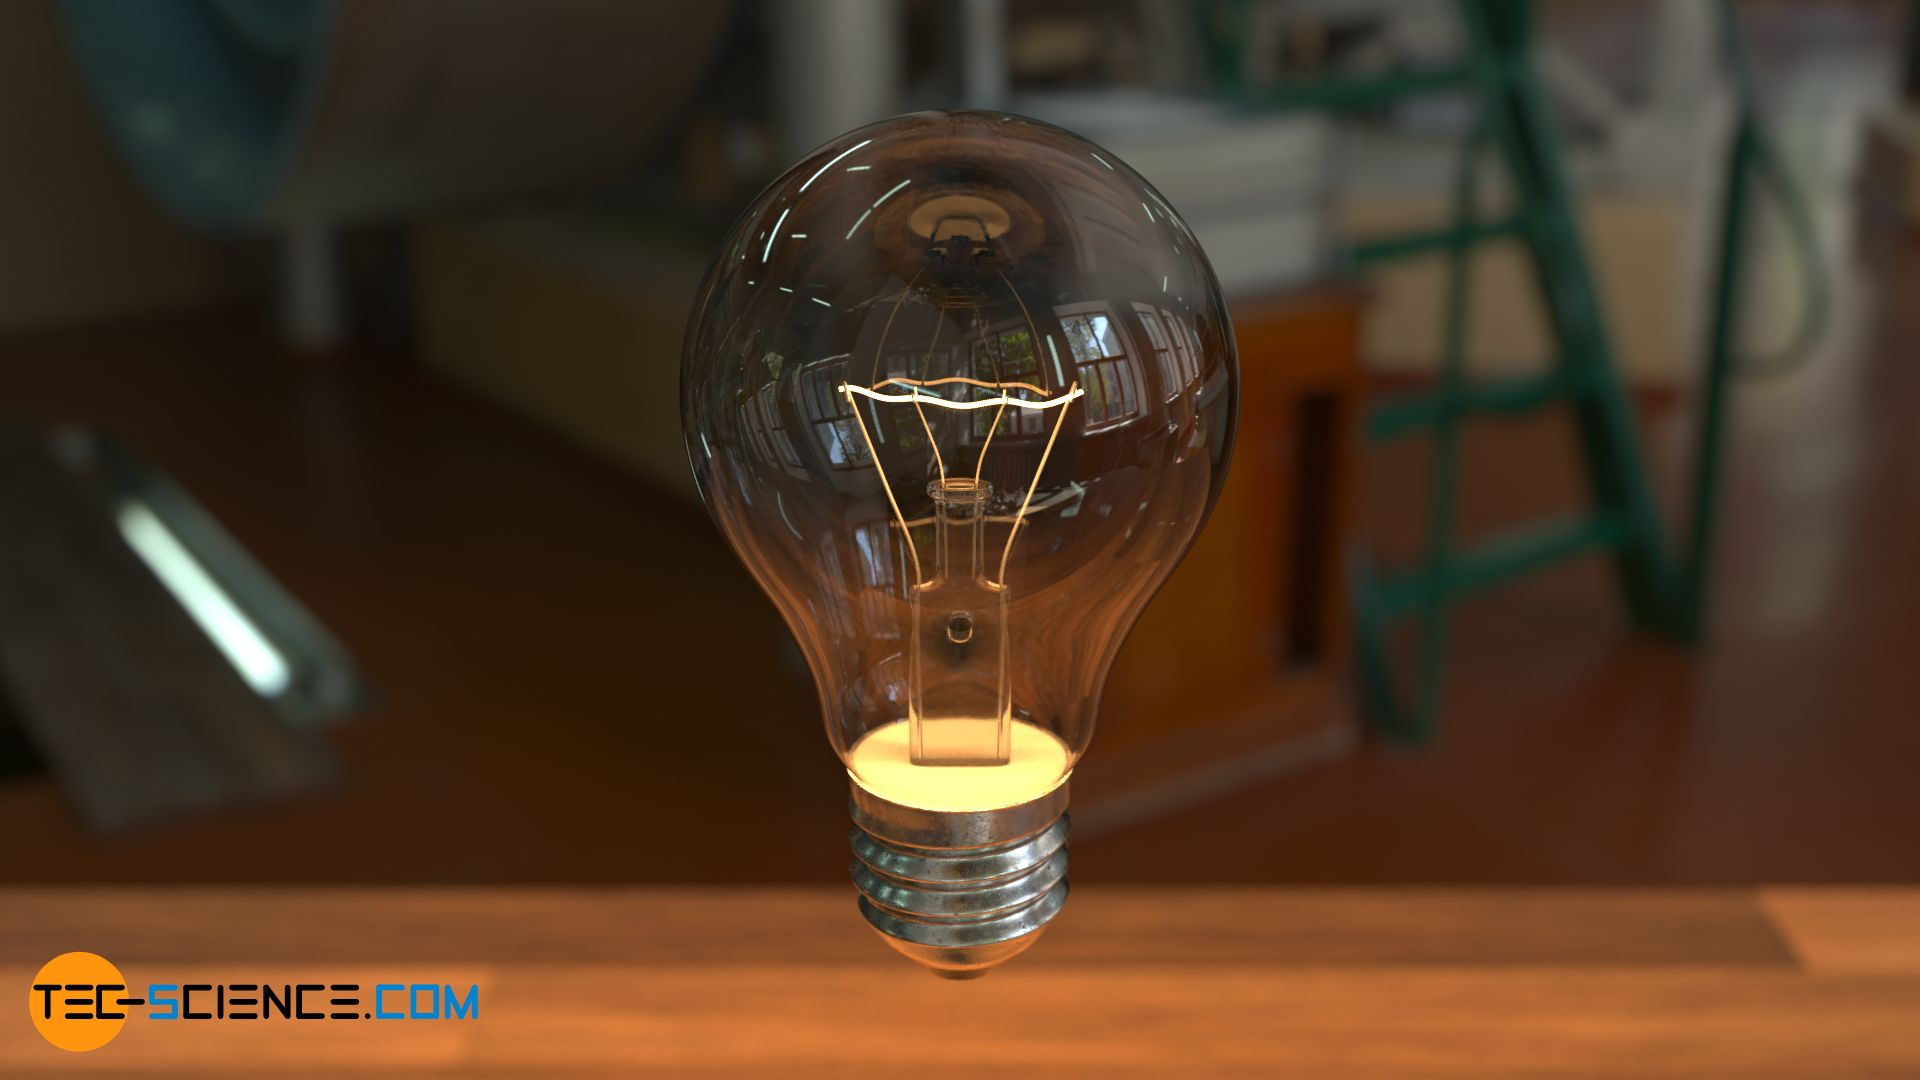 Visible radiation of a light bulb